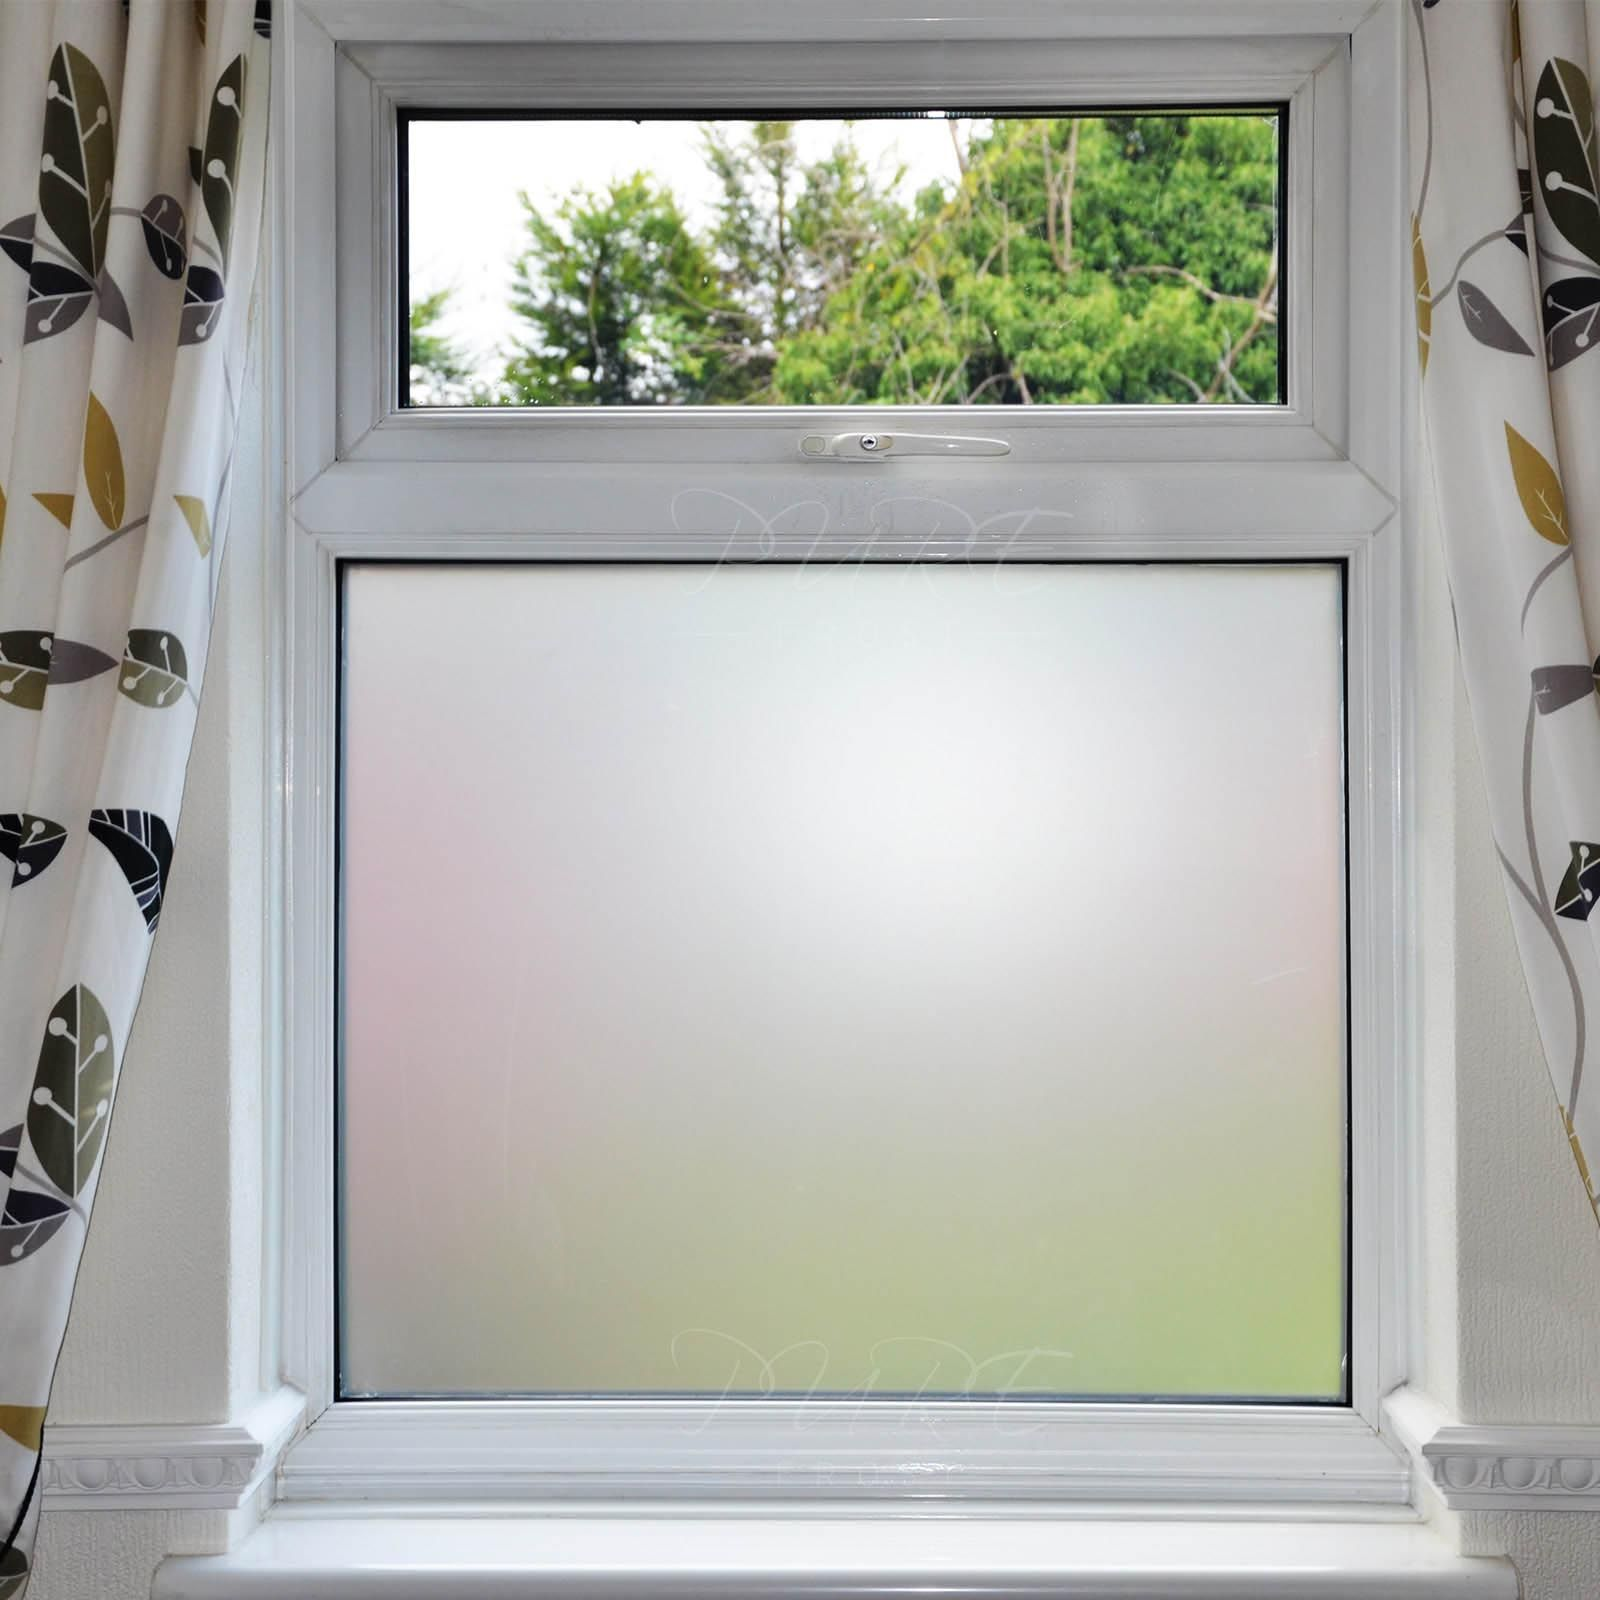 Bathroom Windows unique bathroom windows privacy glass frosted window film static